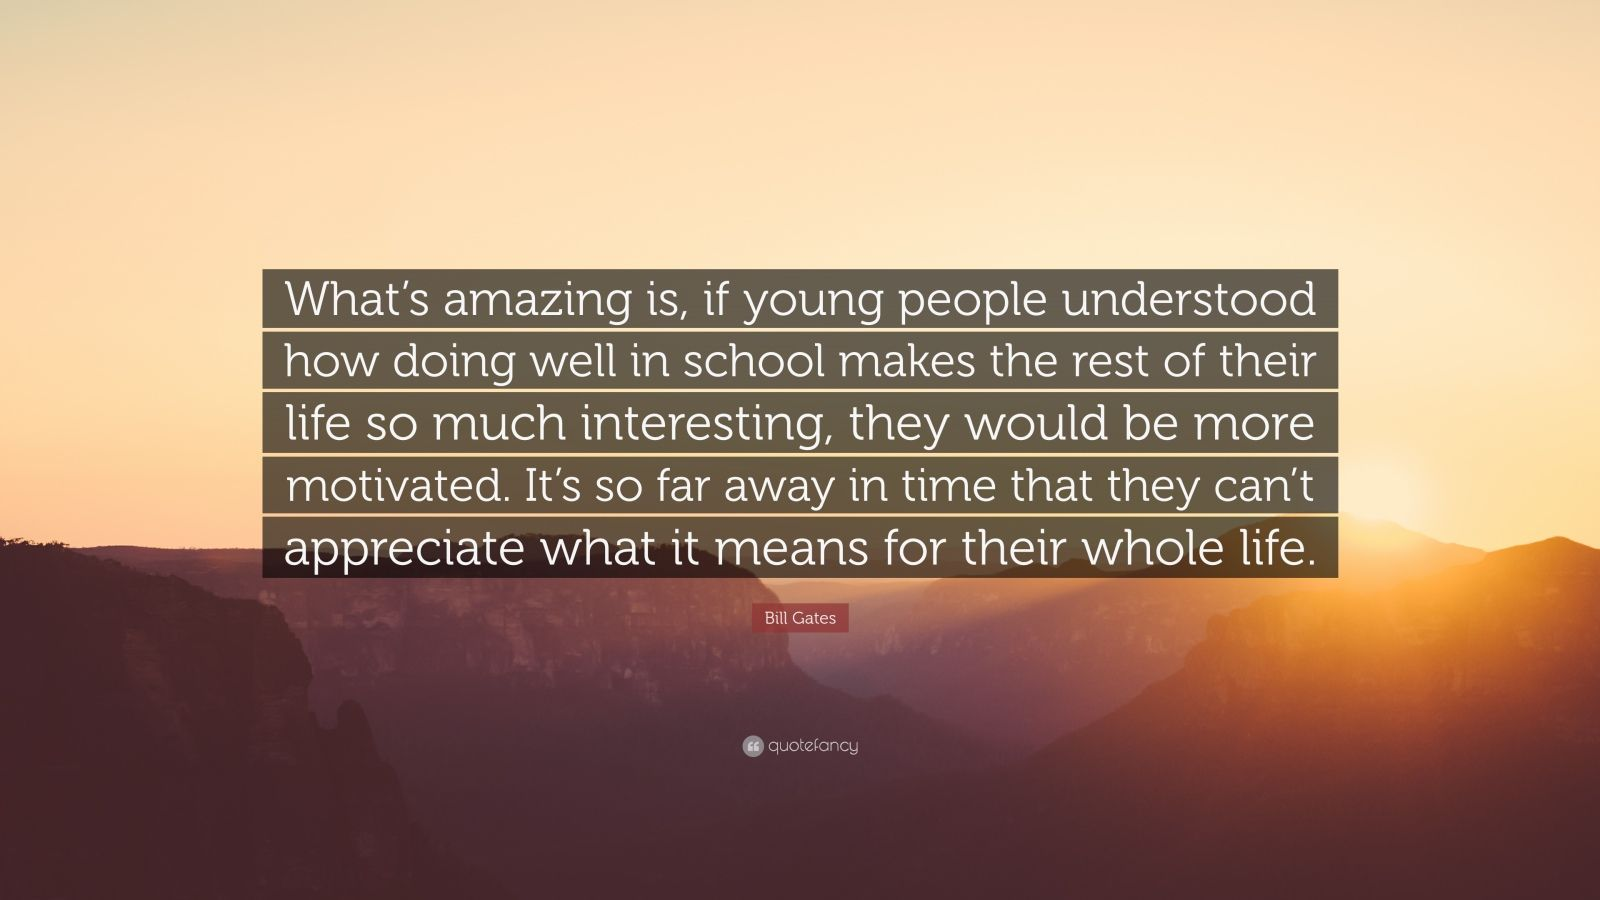 """Bill Gates Quote: """"What's amazing is, if young people understood how doing well in school makes the rest of their life so much interesting, they would be more motivated. It's so far away in time that they can't appreciate what it means for their whole life."""""""